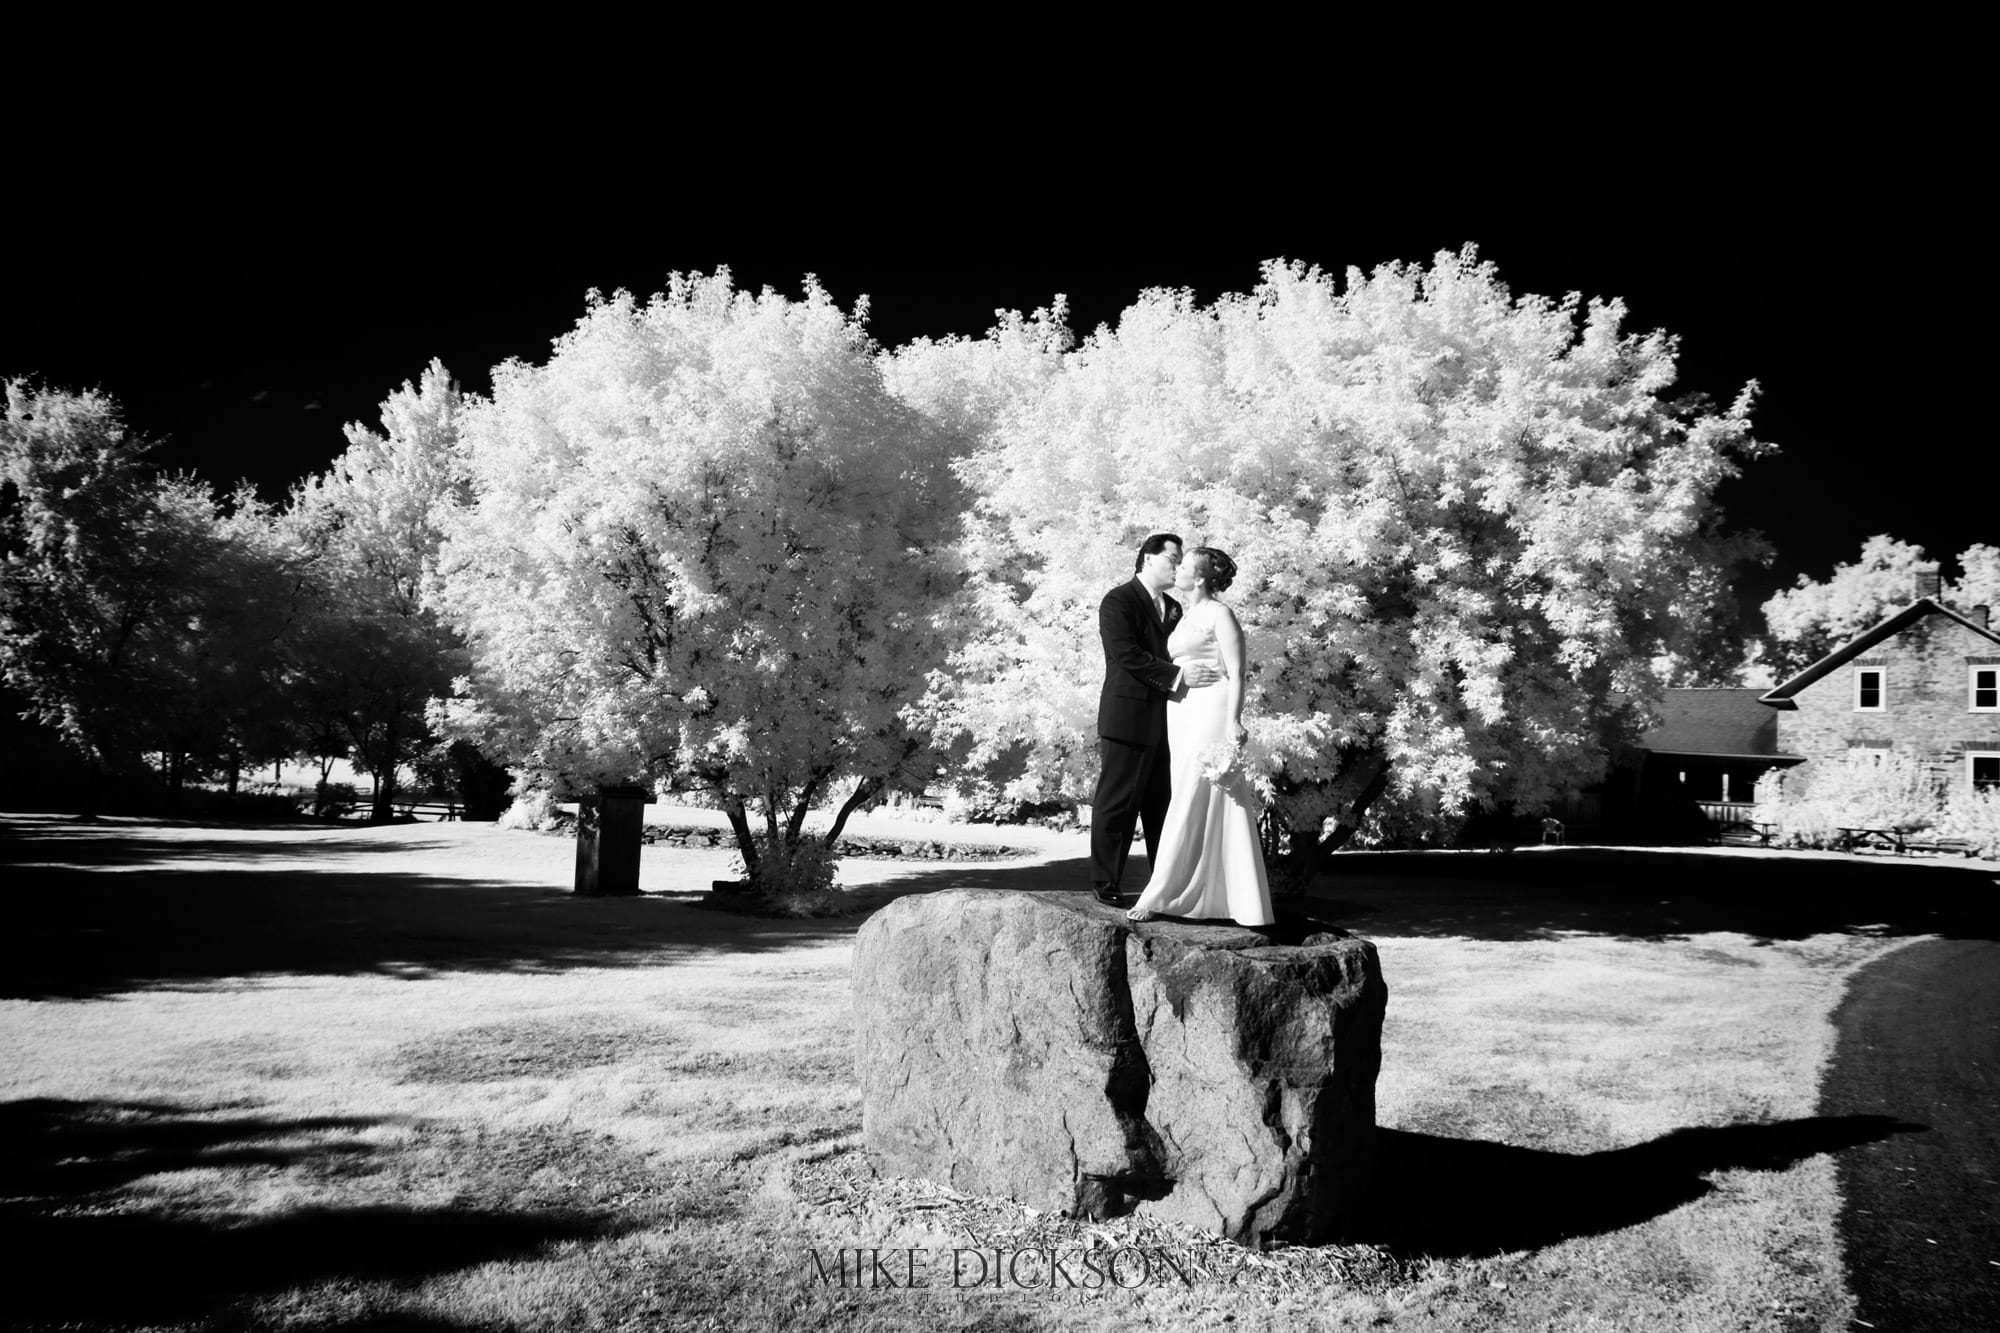 IR Katherine, Magic, Ontario, Ottawa, Stanley's Old Maple Lane Farm, STD, Summer, Wedding, © Mike Dickson